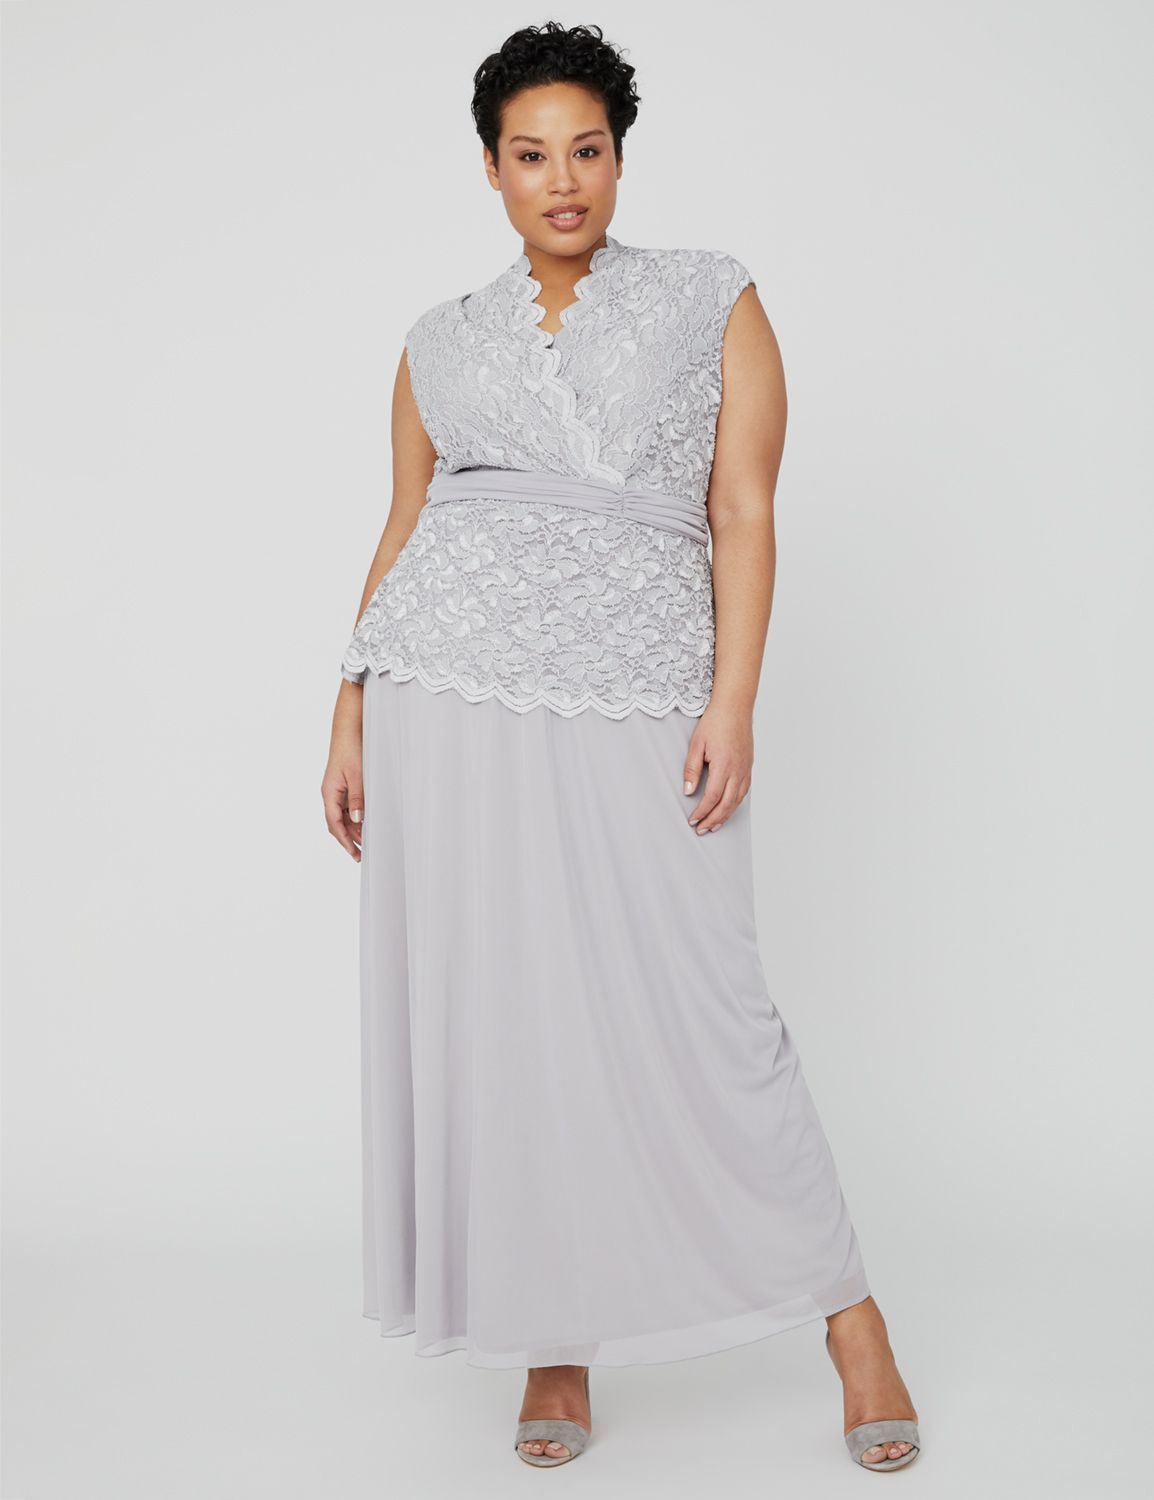 Plus Size Evening Dresses & Formal Gowns | Catherines